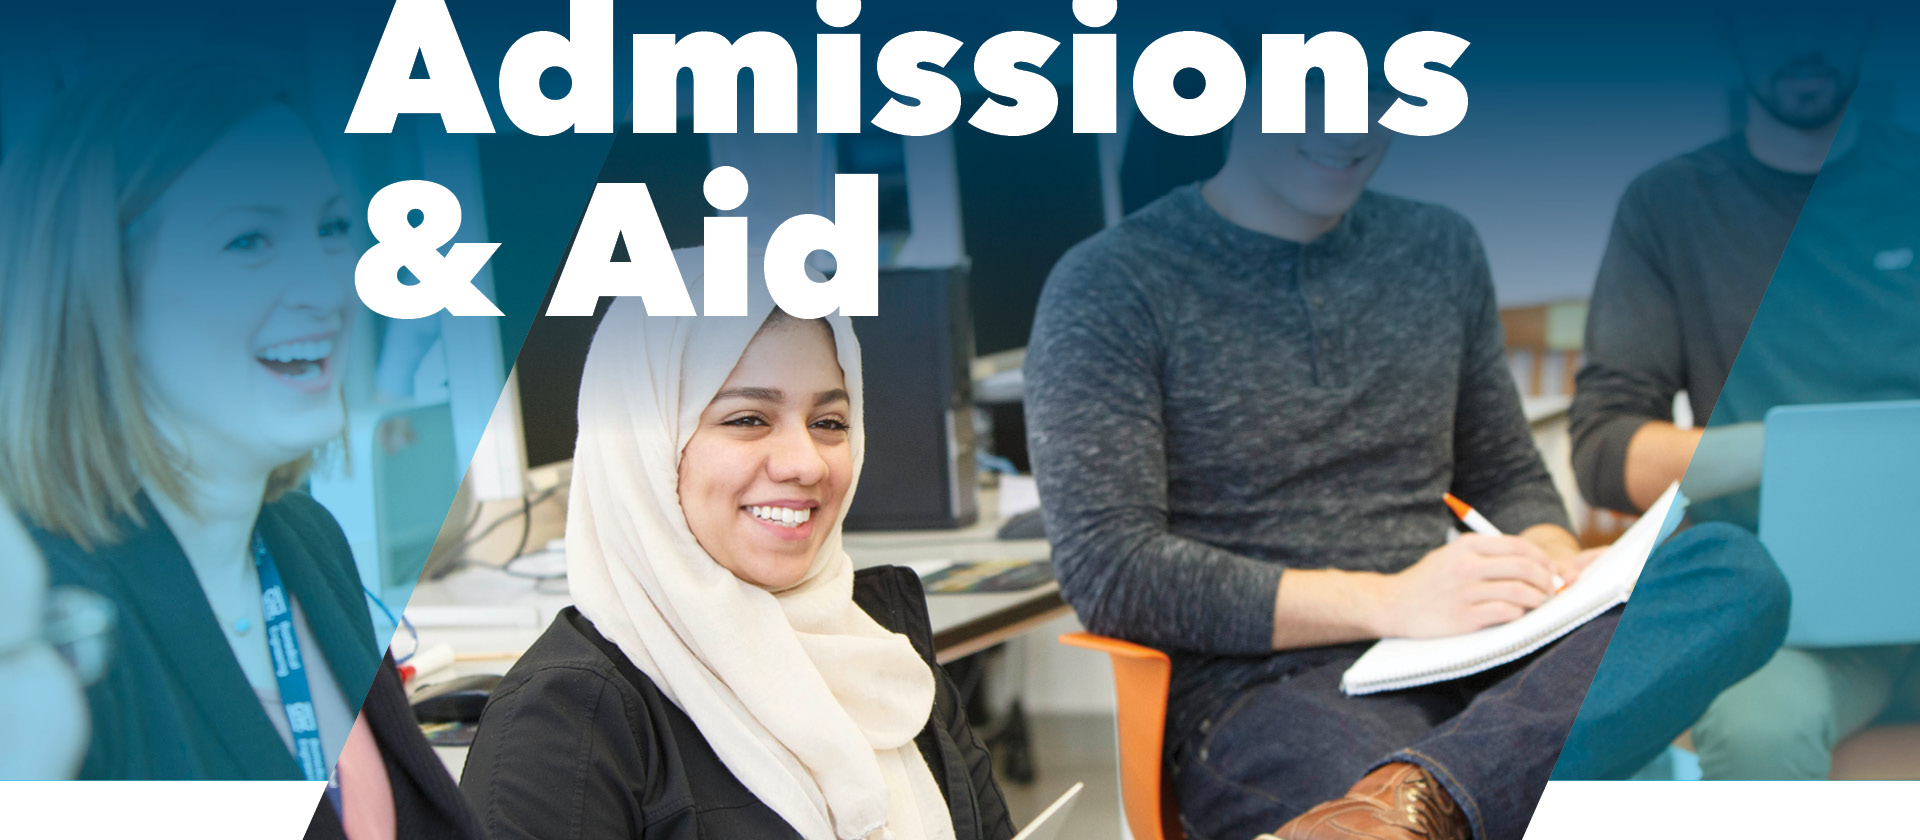 Admissions and Aid; Students in a classroom